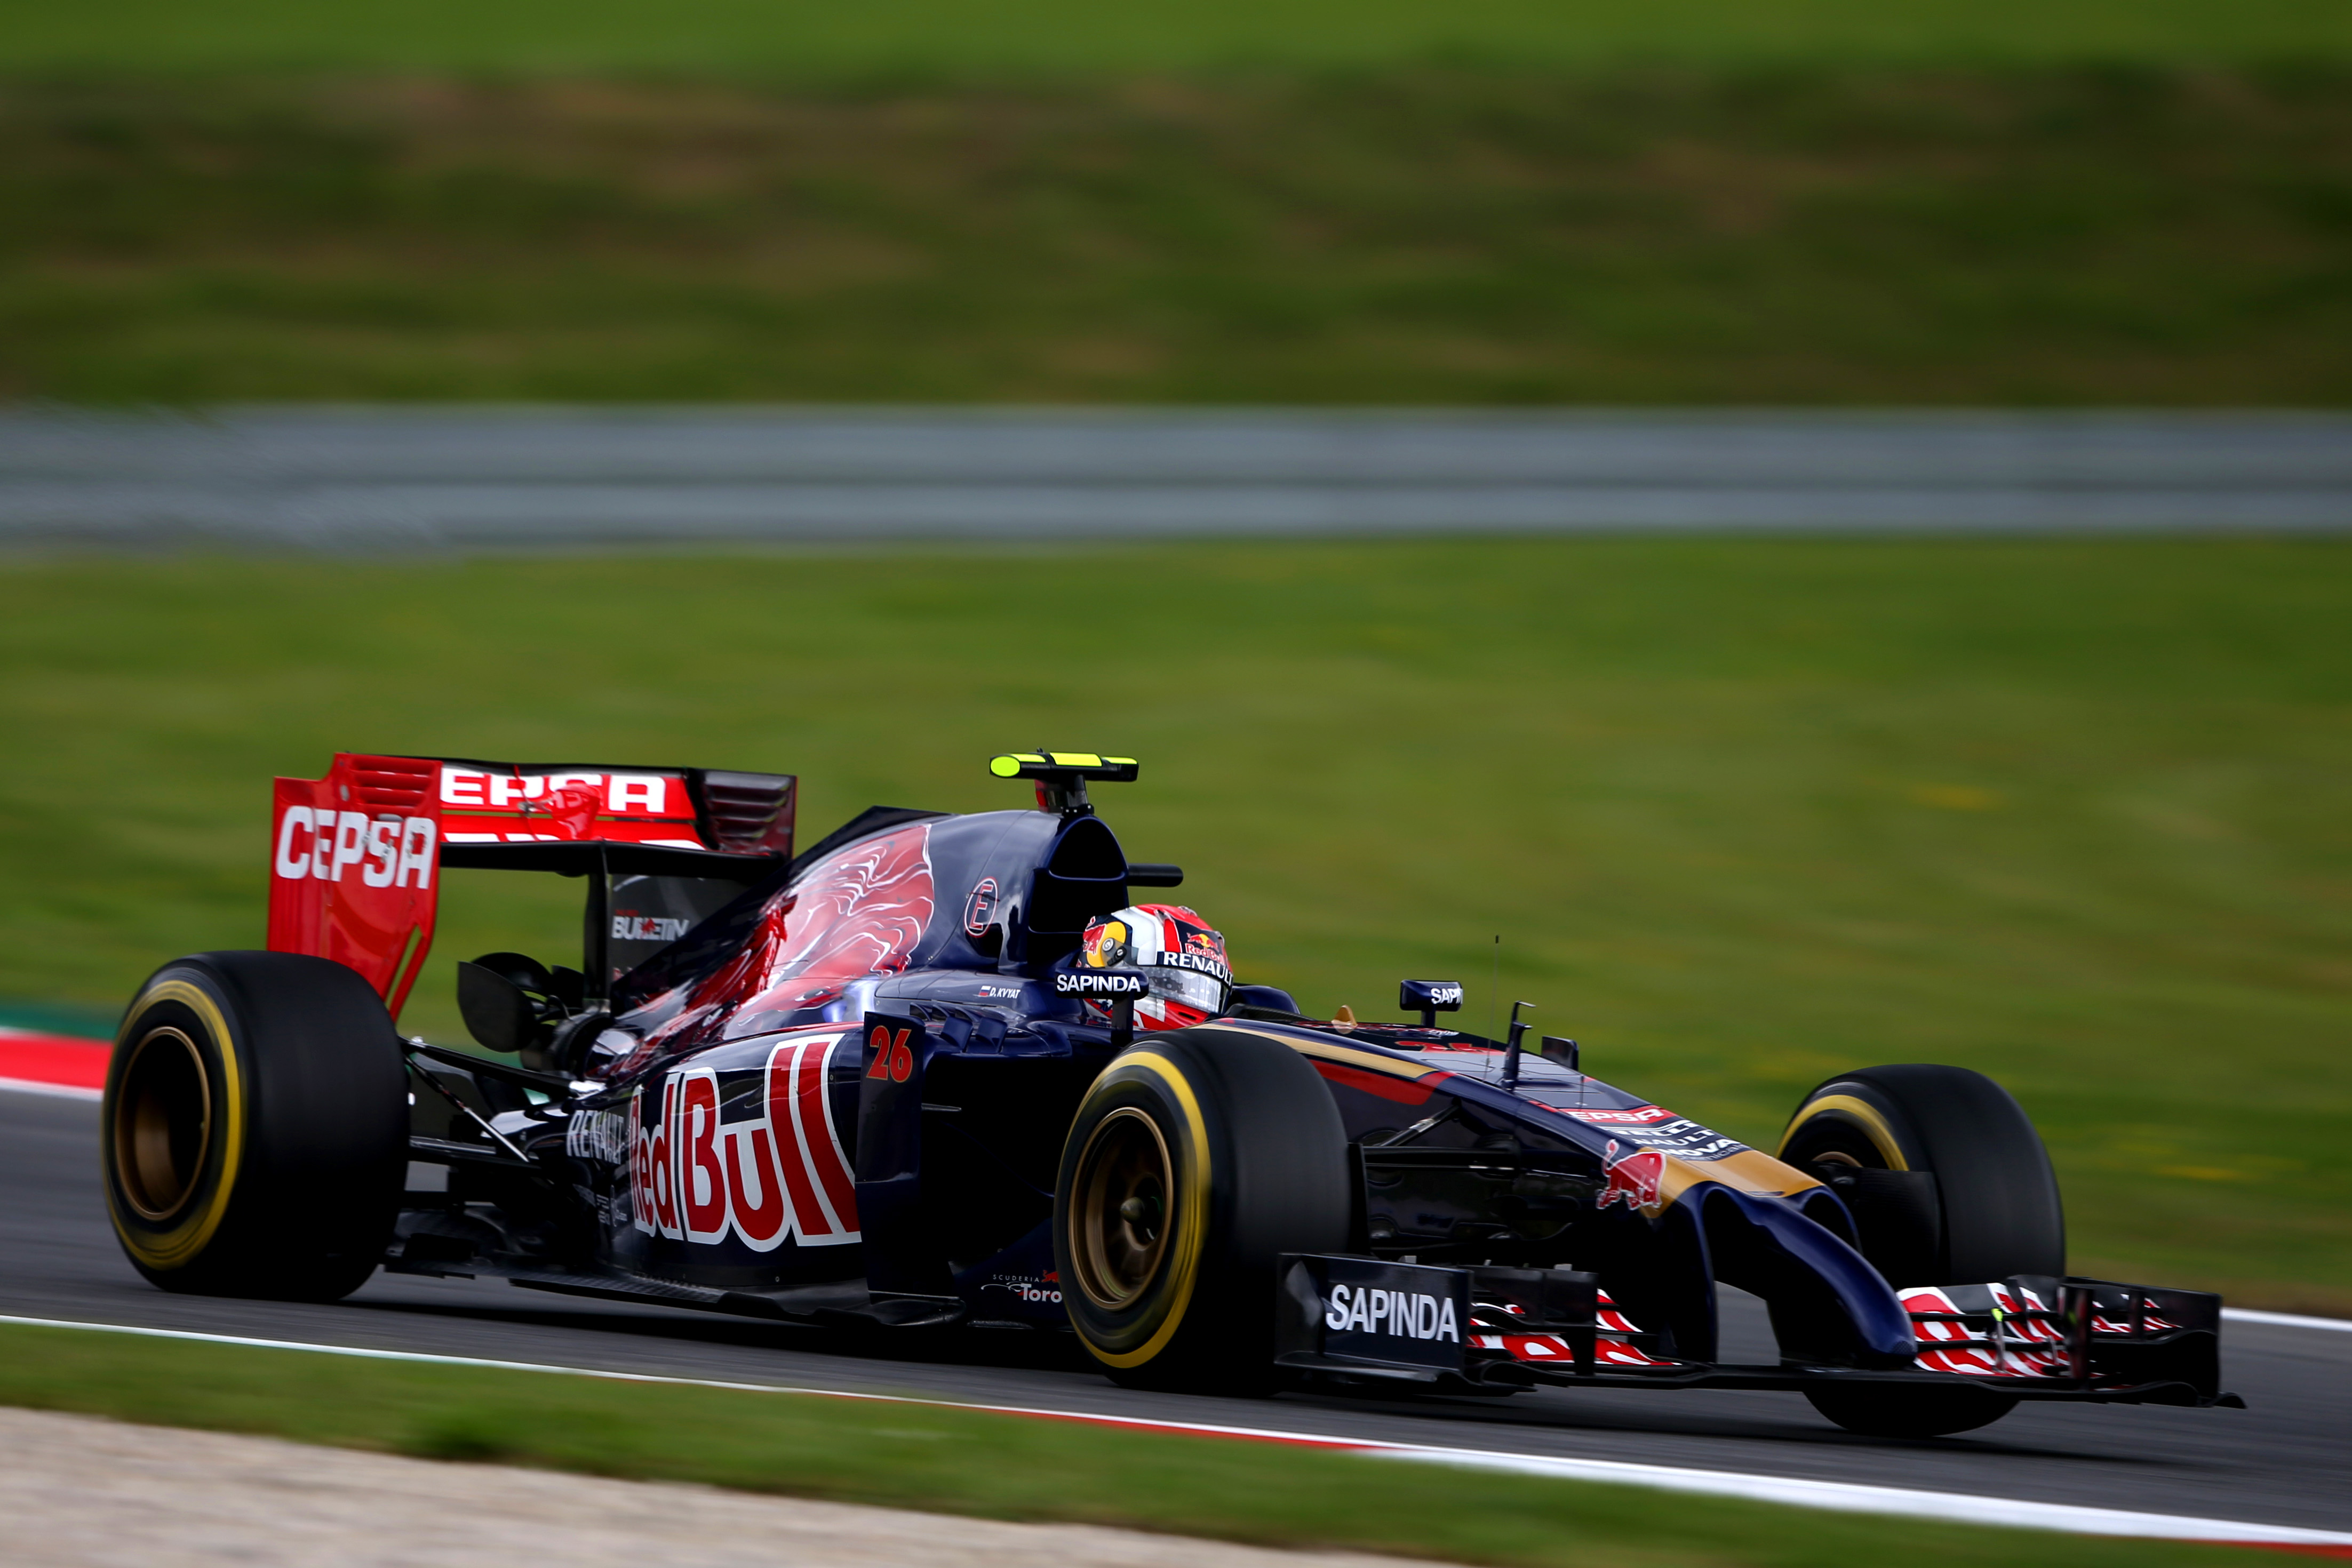 F1 Grand Prix of Austria - Practice